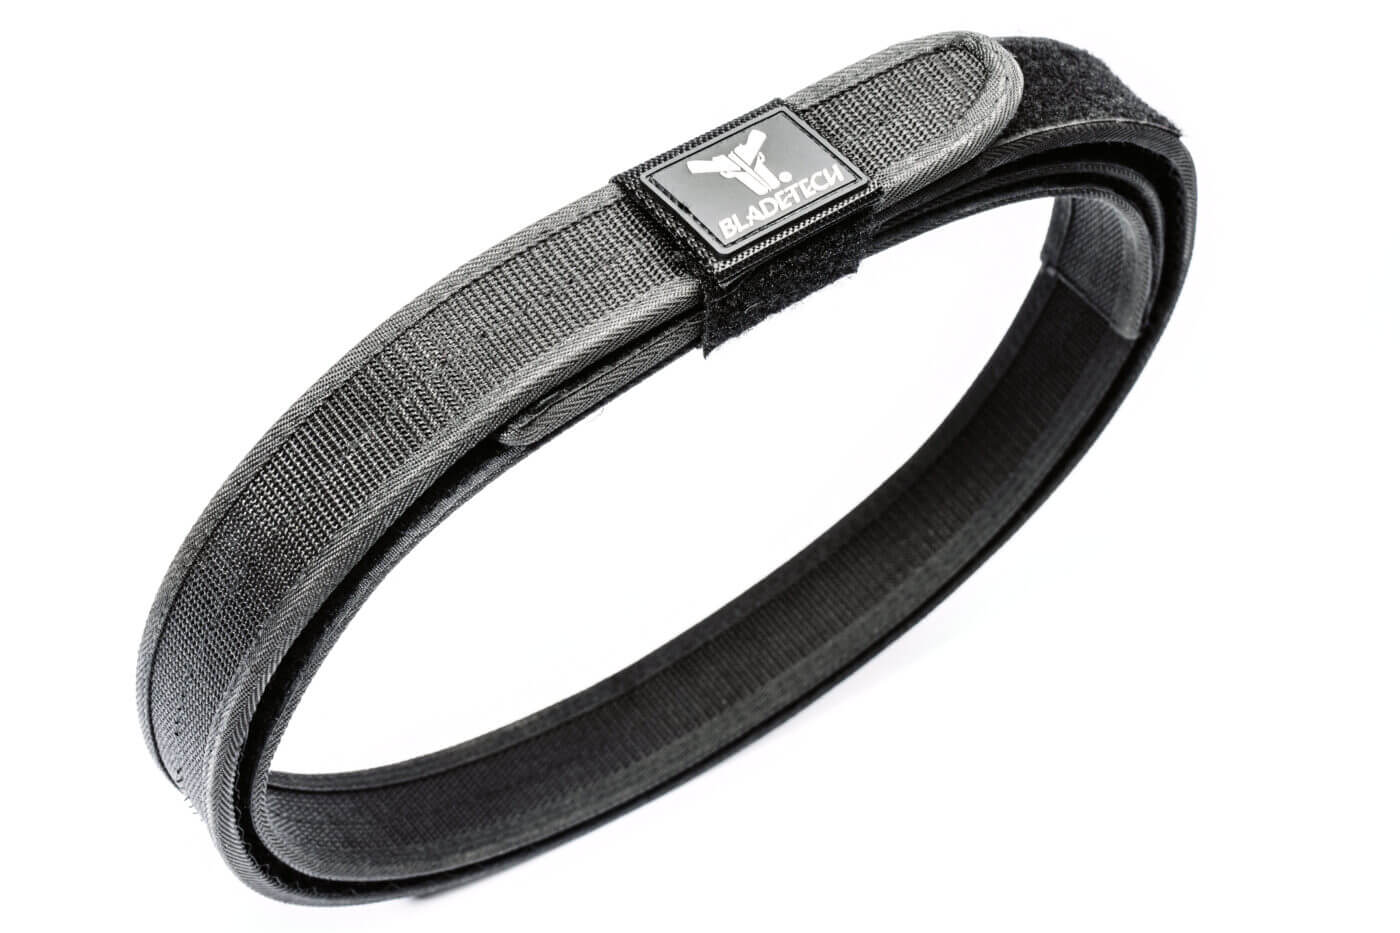 Velocity Competition Speed Belt by Blade-Tech